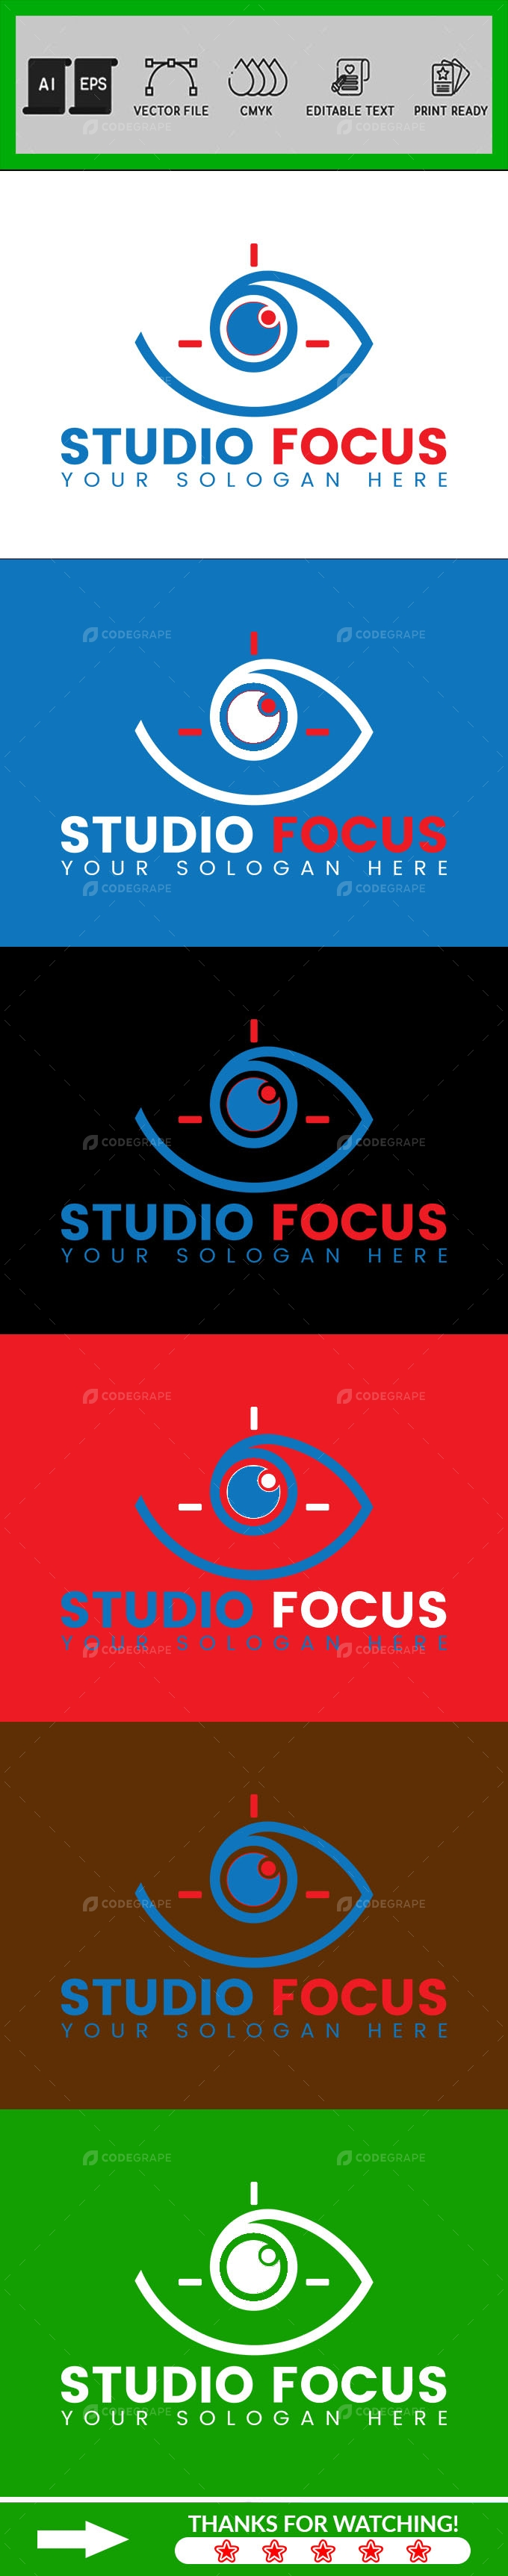 Studio Focus Camera Logo Design Template